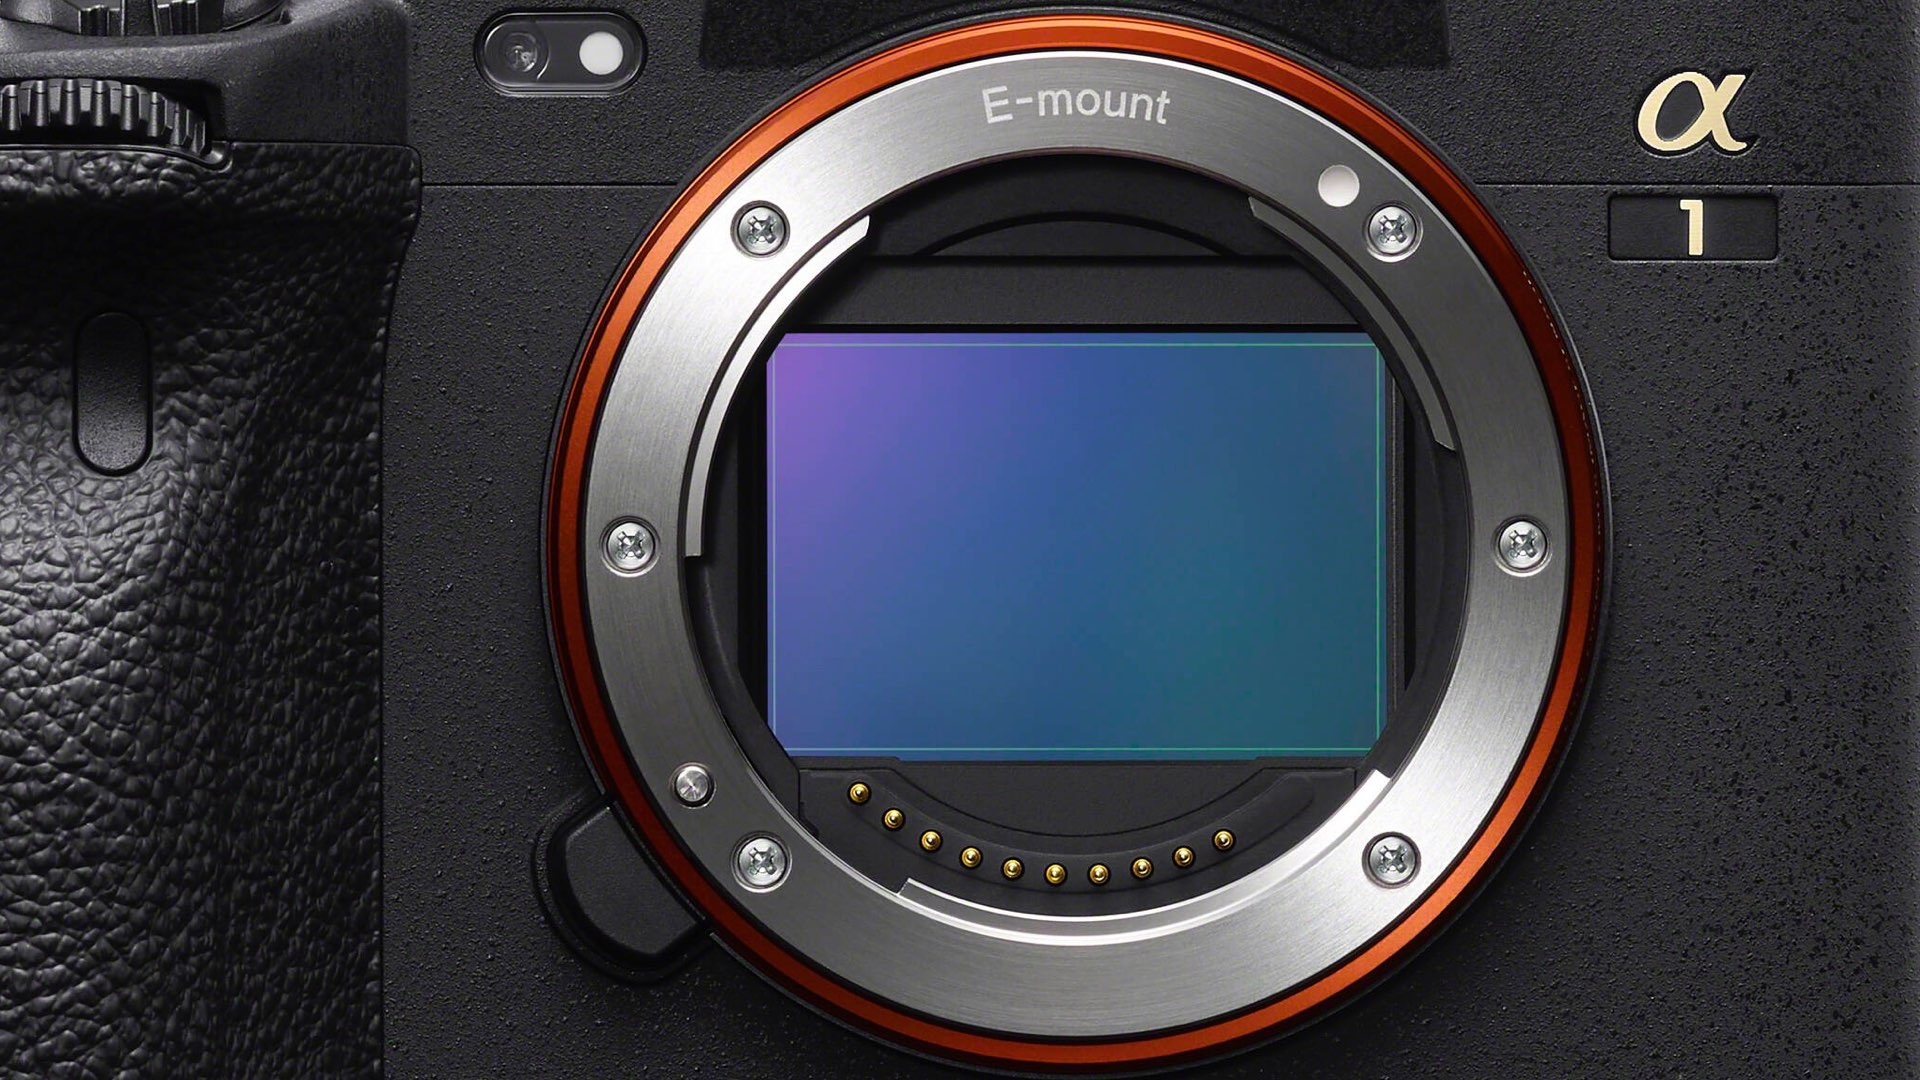 Sony Aims for High-Speed Imaging of Large Sensors